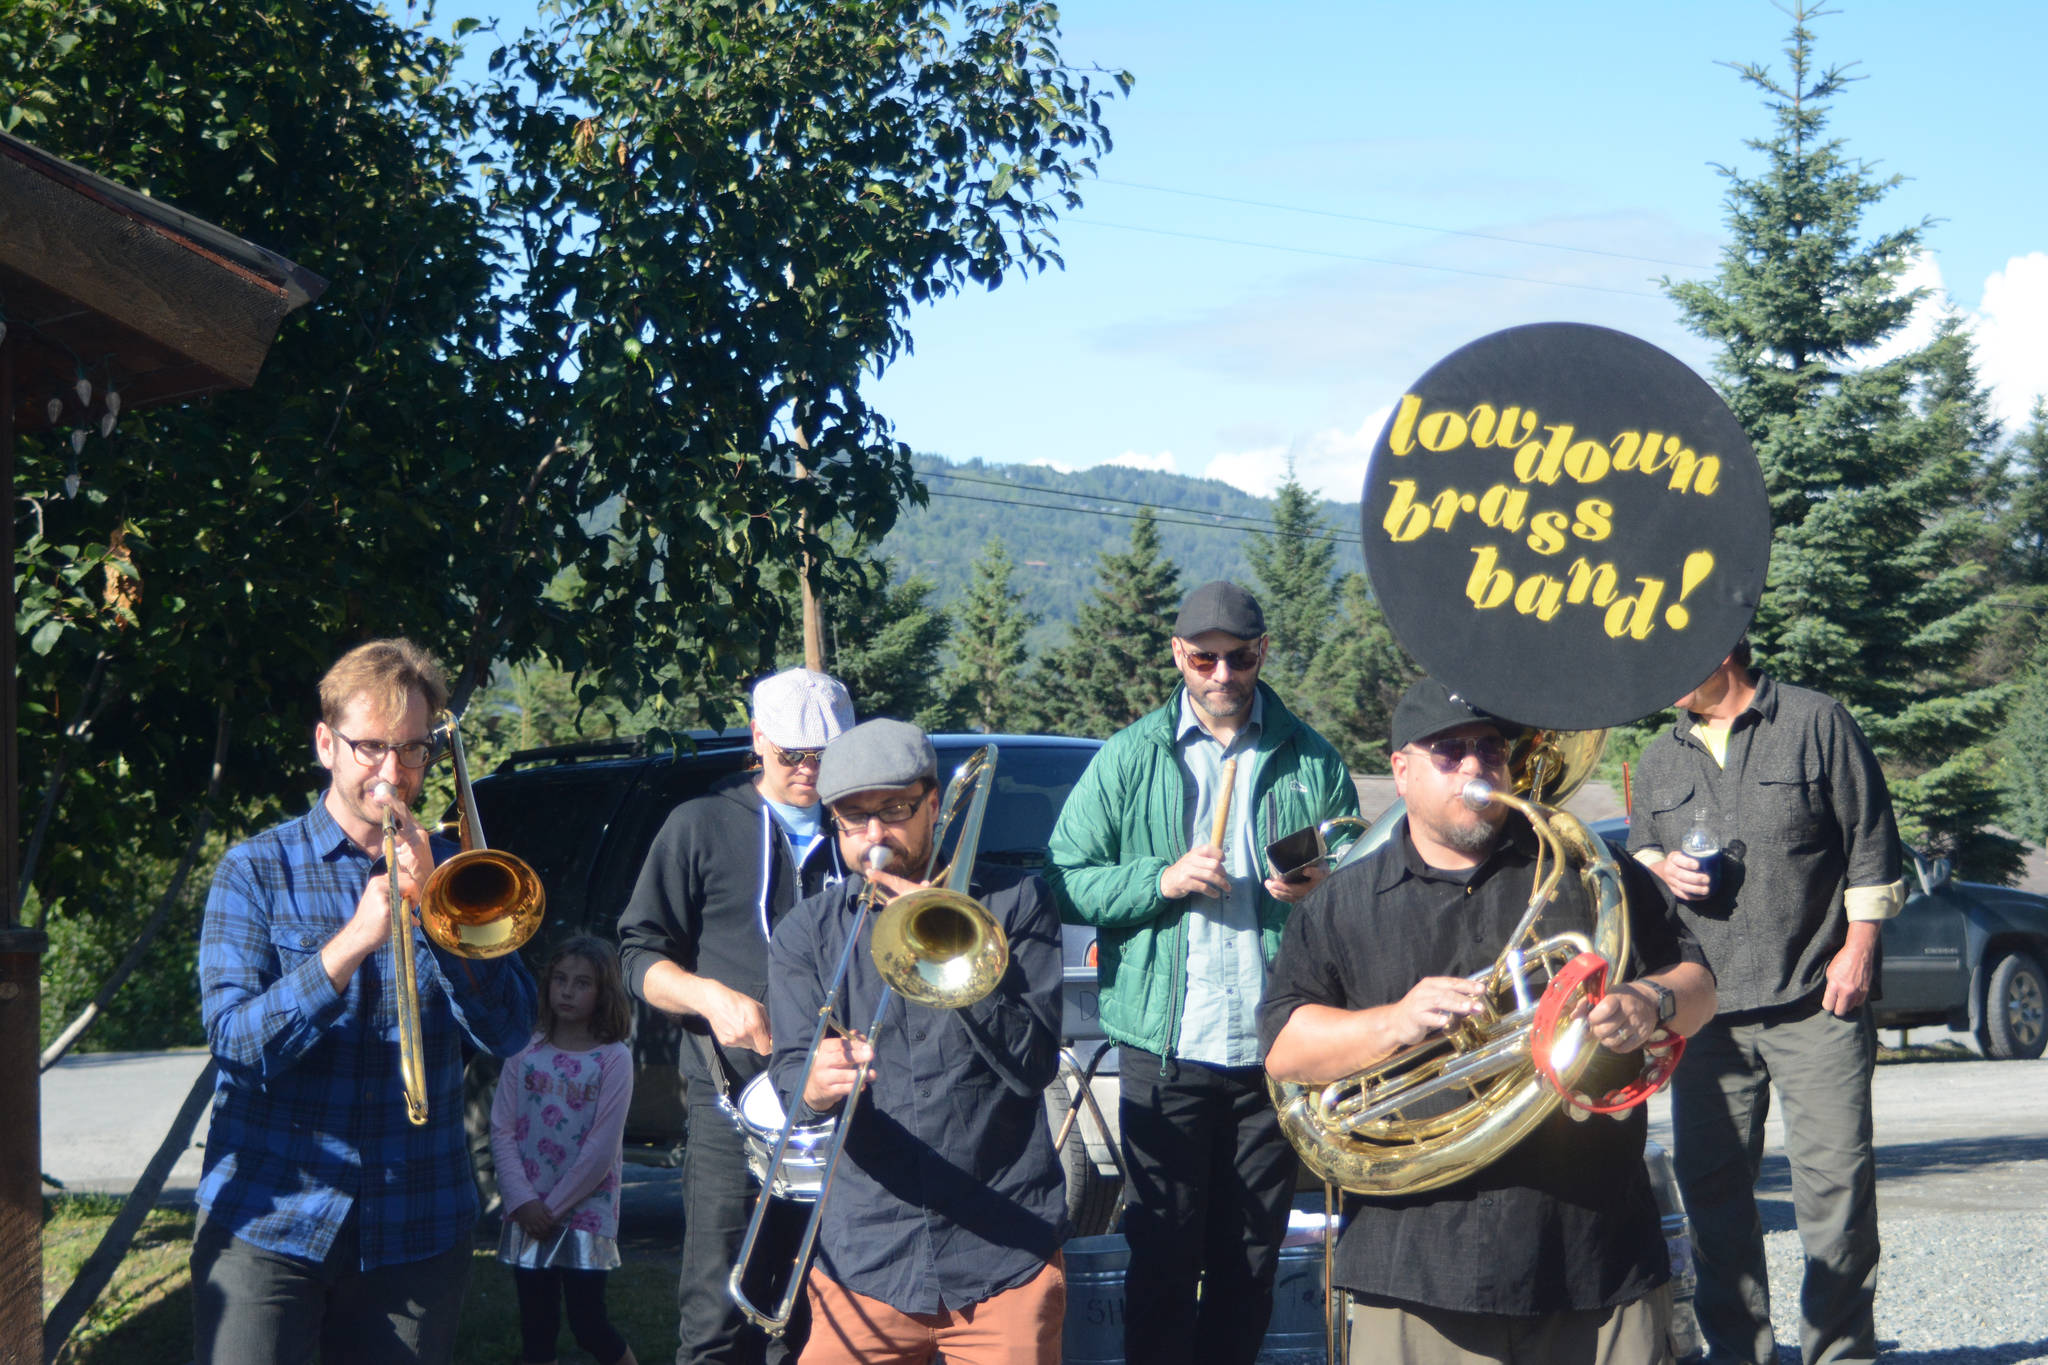 Members of the LowDown Brass Band perform an impromptu session Tuesday Aug. 7, 2018 at the Homer Brewery in Homer, Alaska. The band played at Salmonfest on Saturday, at Alice's Champagne Palace on Tuesday and at Soldotna Creek Park on Wednesday. (Photo by Michael Armstrong/Homer News)